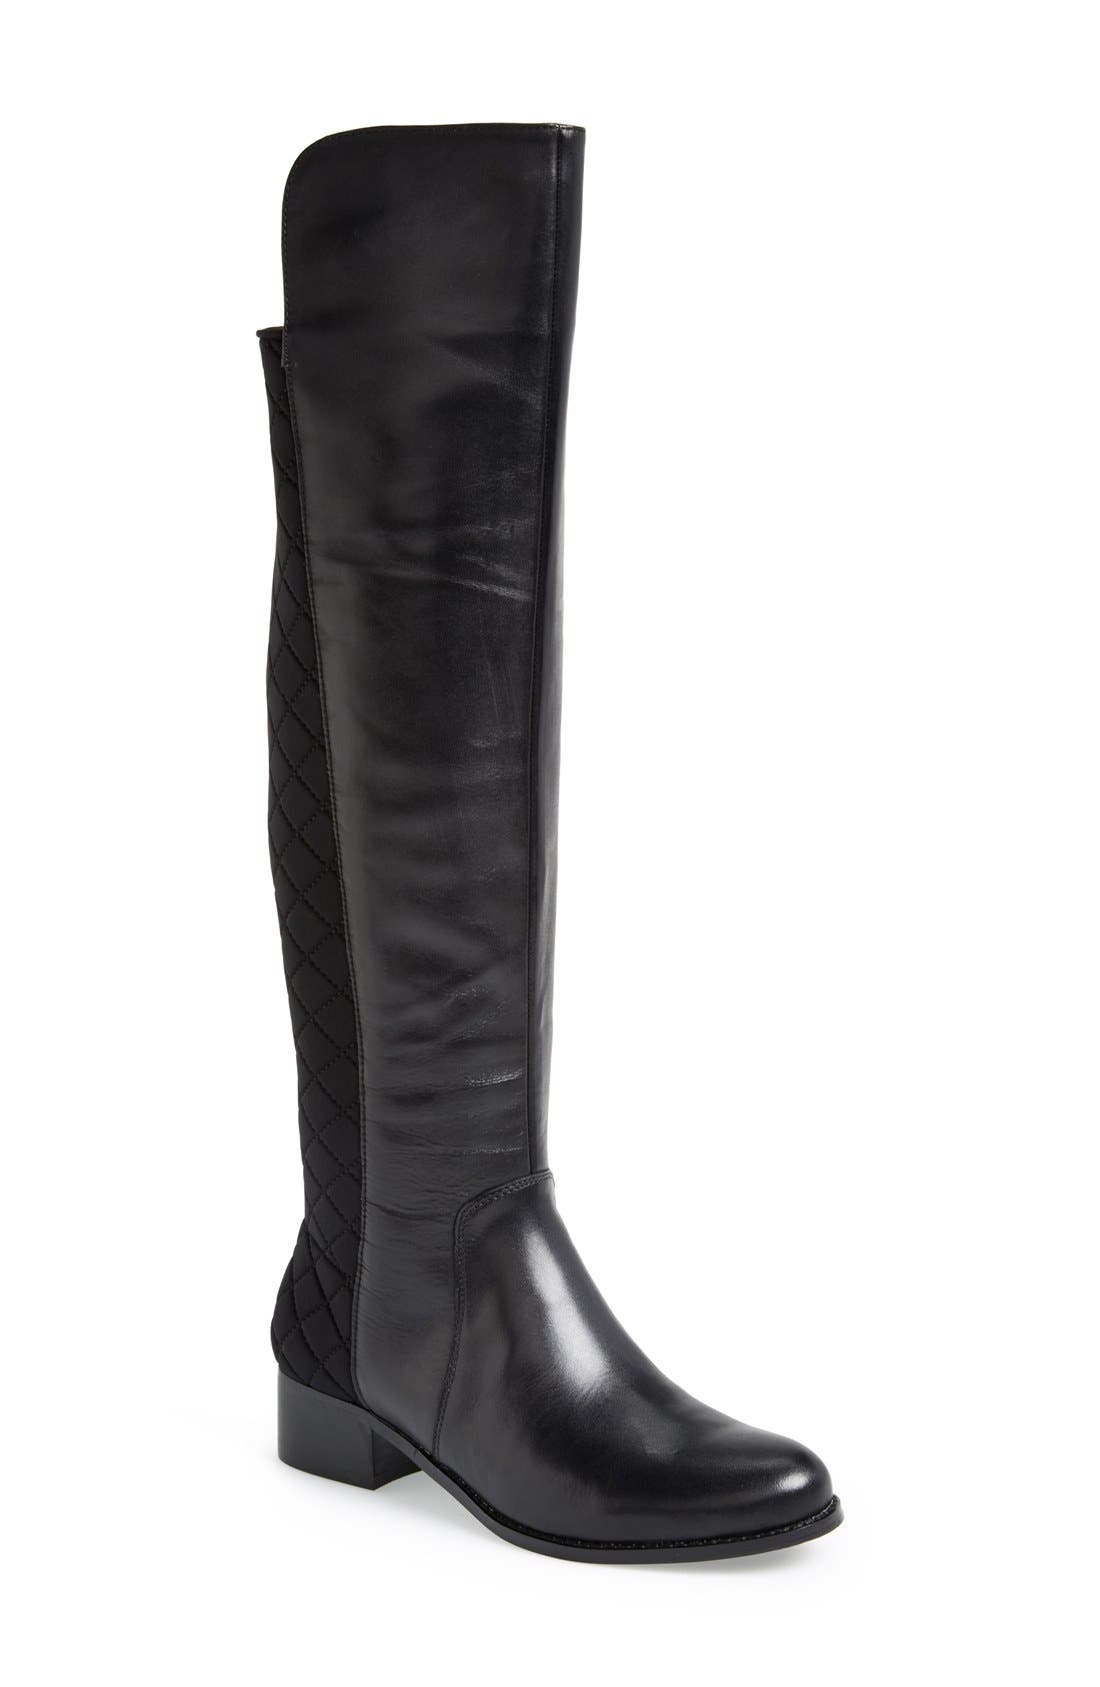 Alternate Image 1 Selected - Charles by Charles David 'Jace' Over The Knee Boot (Women)